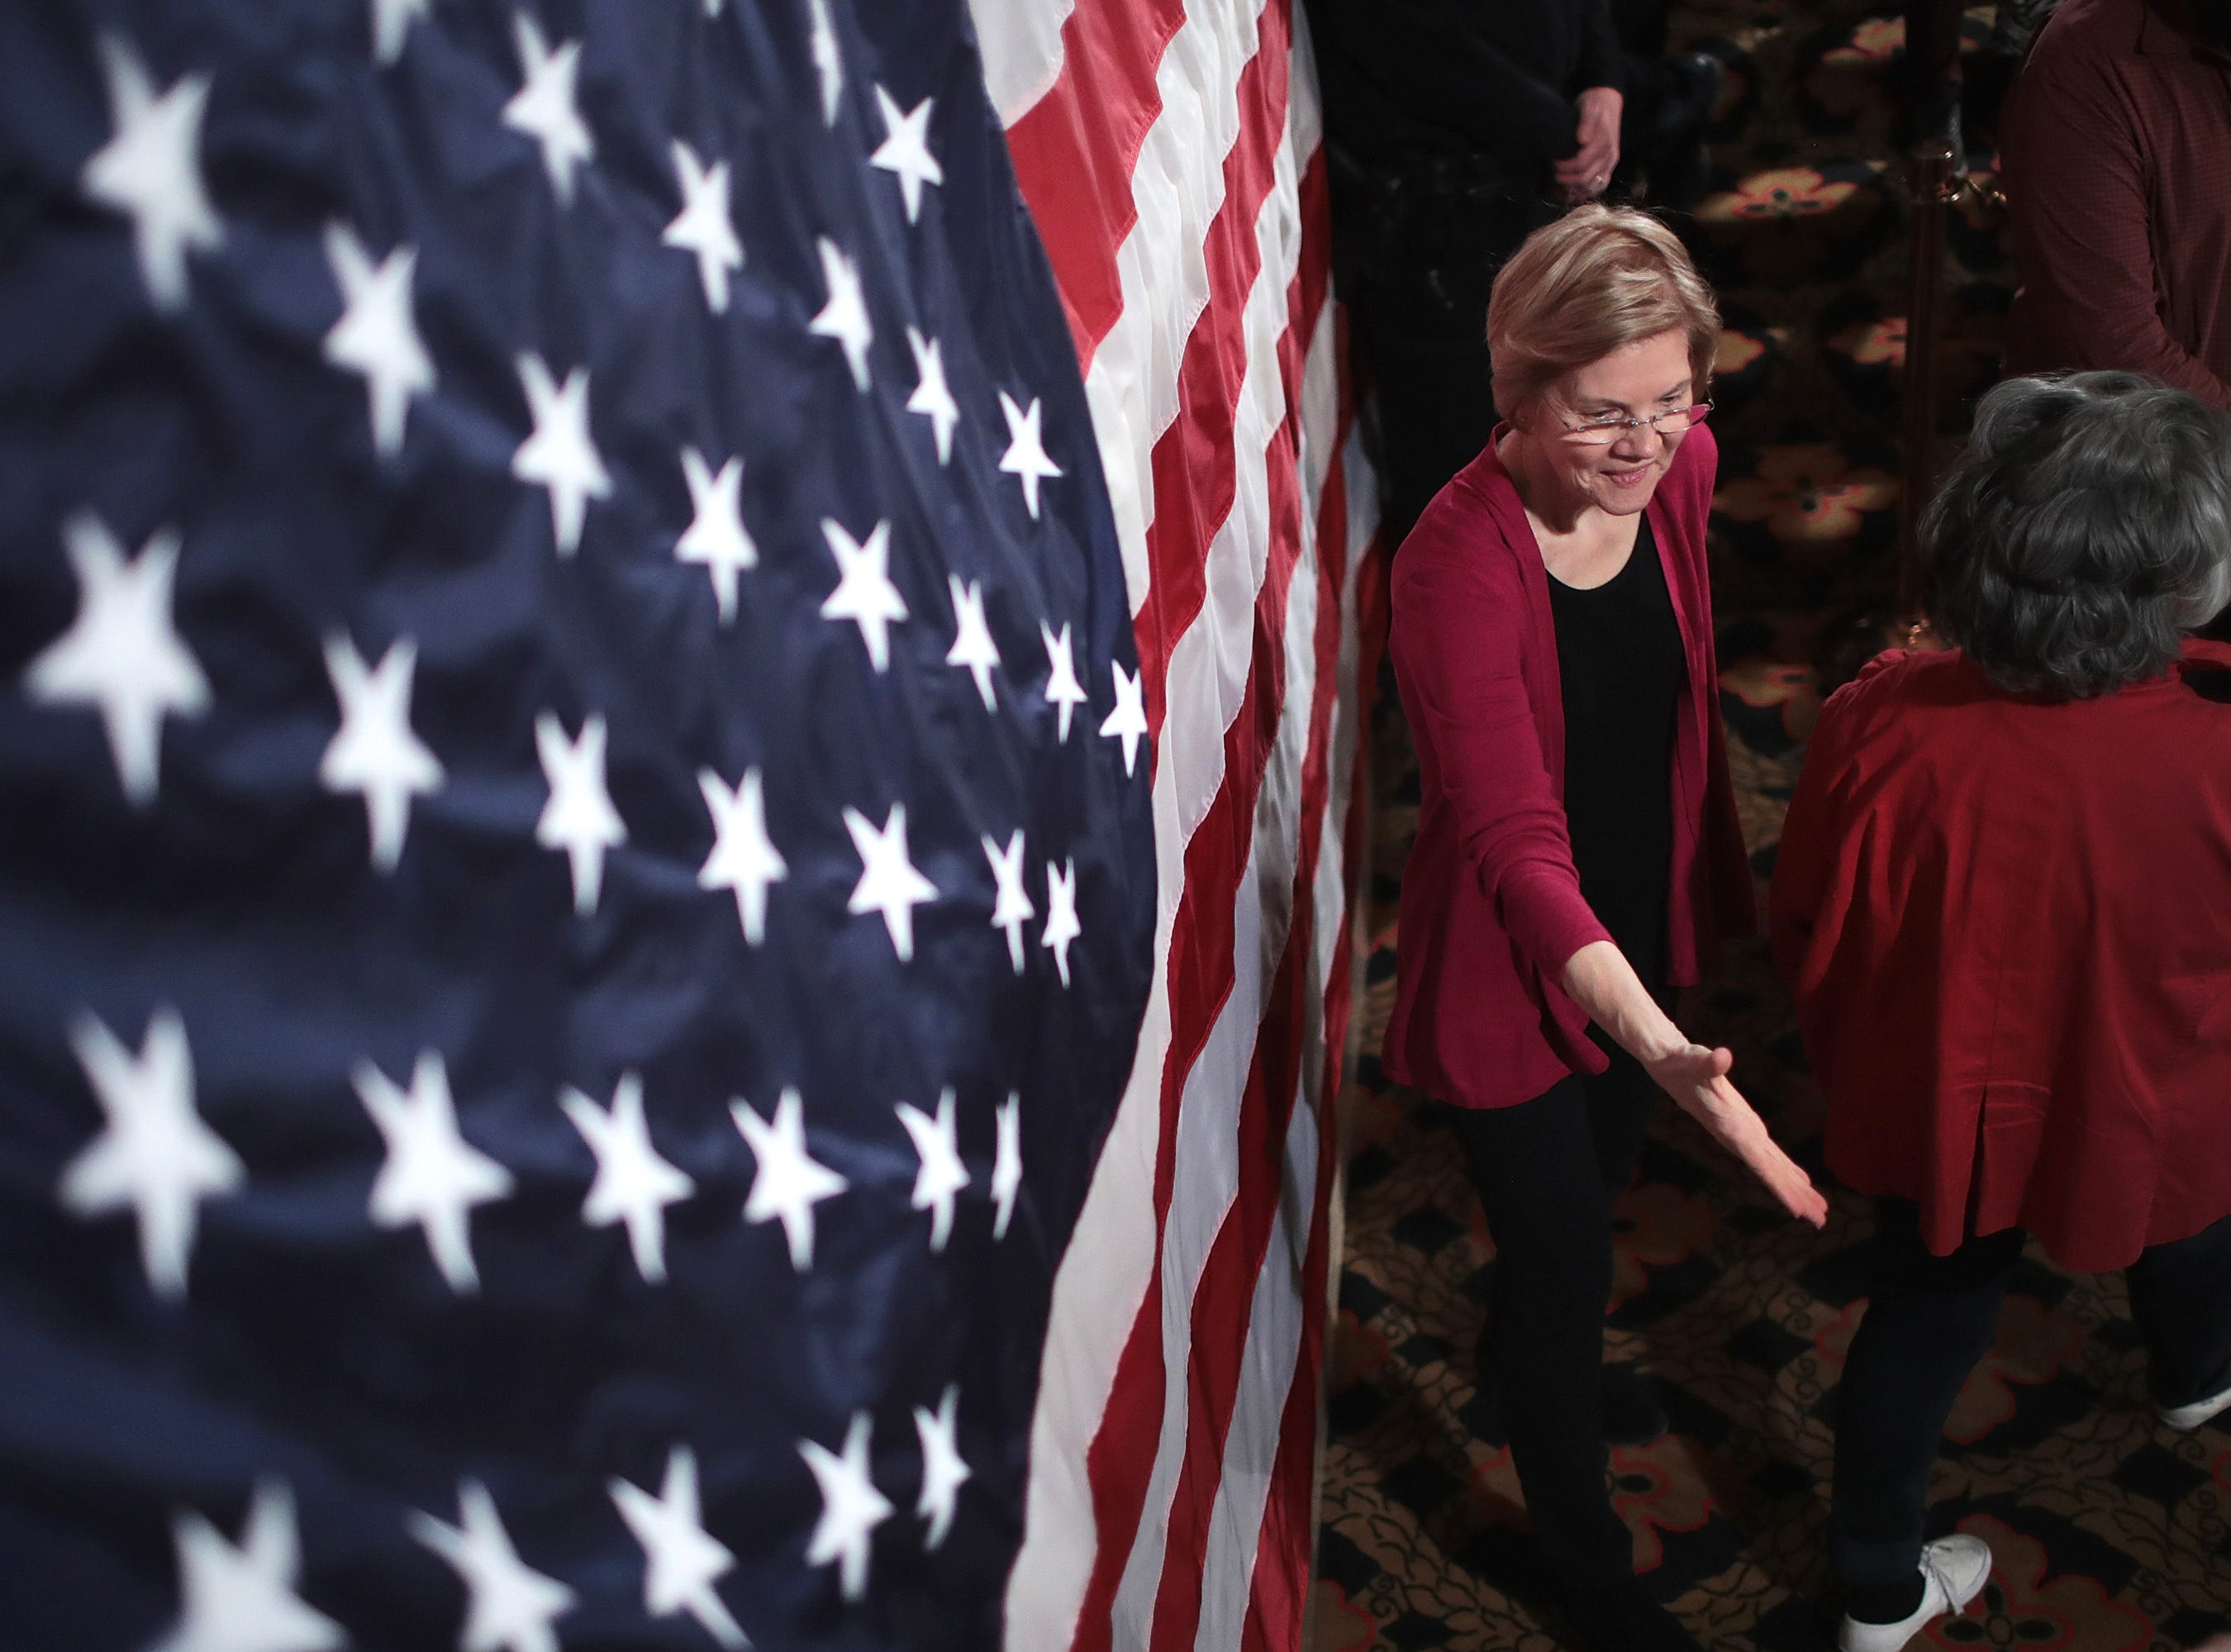 Sen. Elizabeth Warren (D-MA) greets guests during an organizing event at the Orpheum Theater on January 5, 2019 in Sioux City, Iowa.